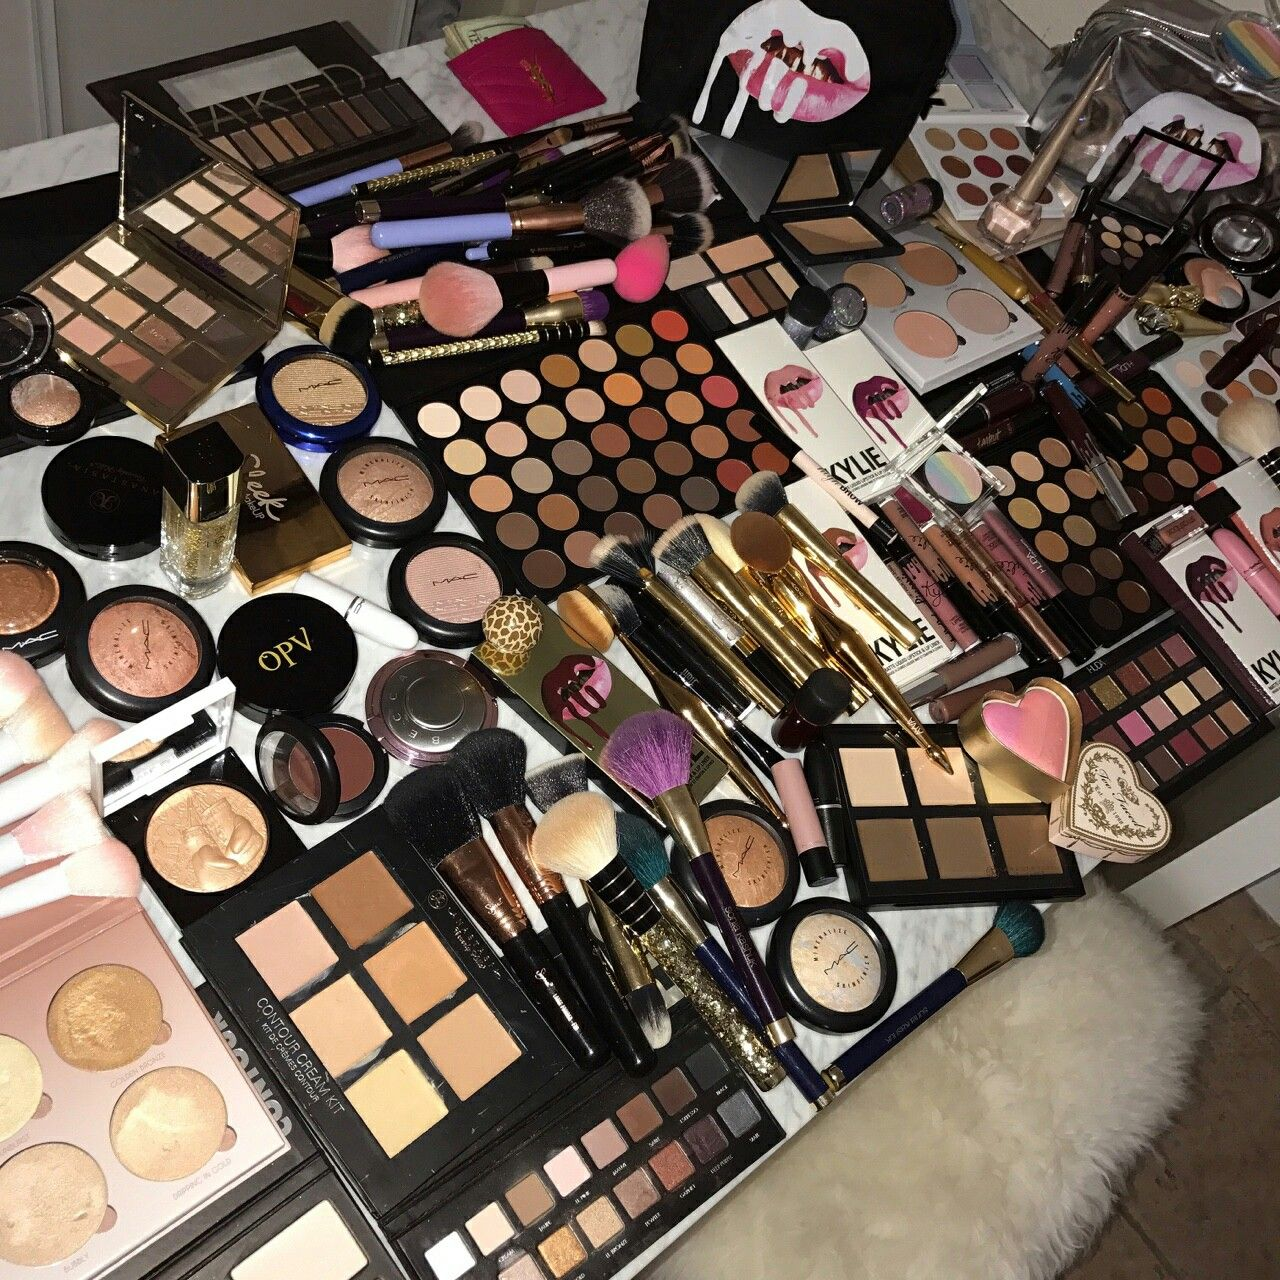 Makeup lot! All items included Makeup items, It